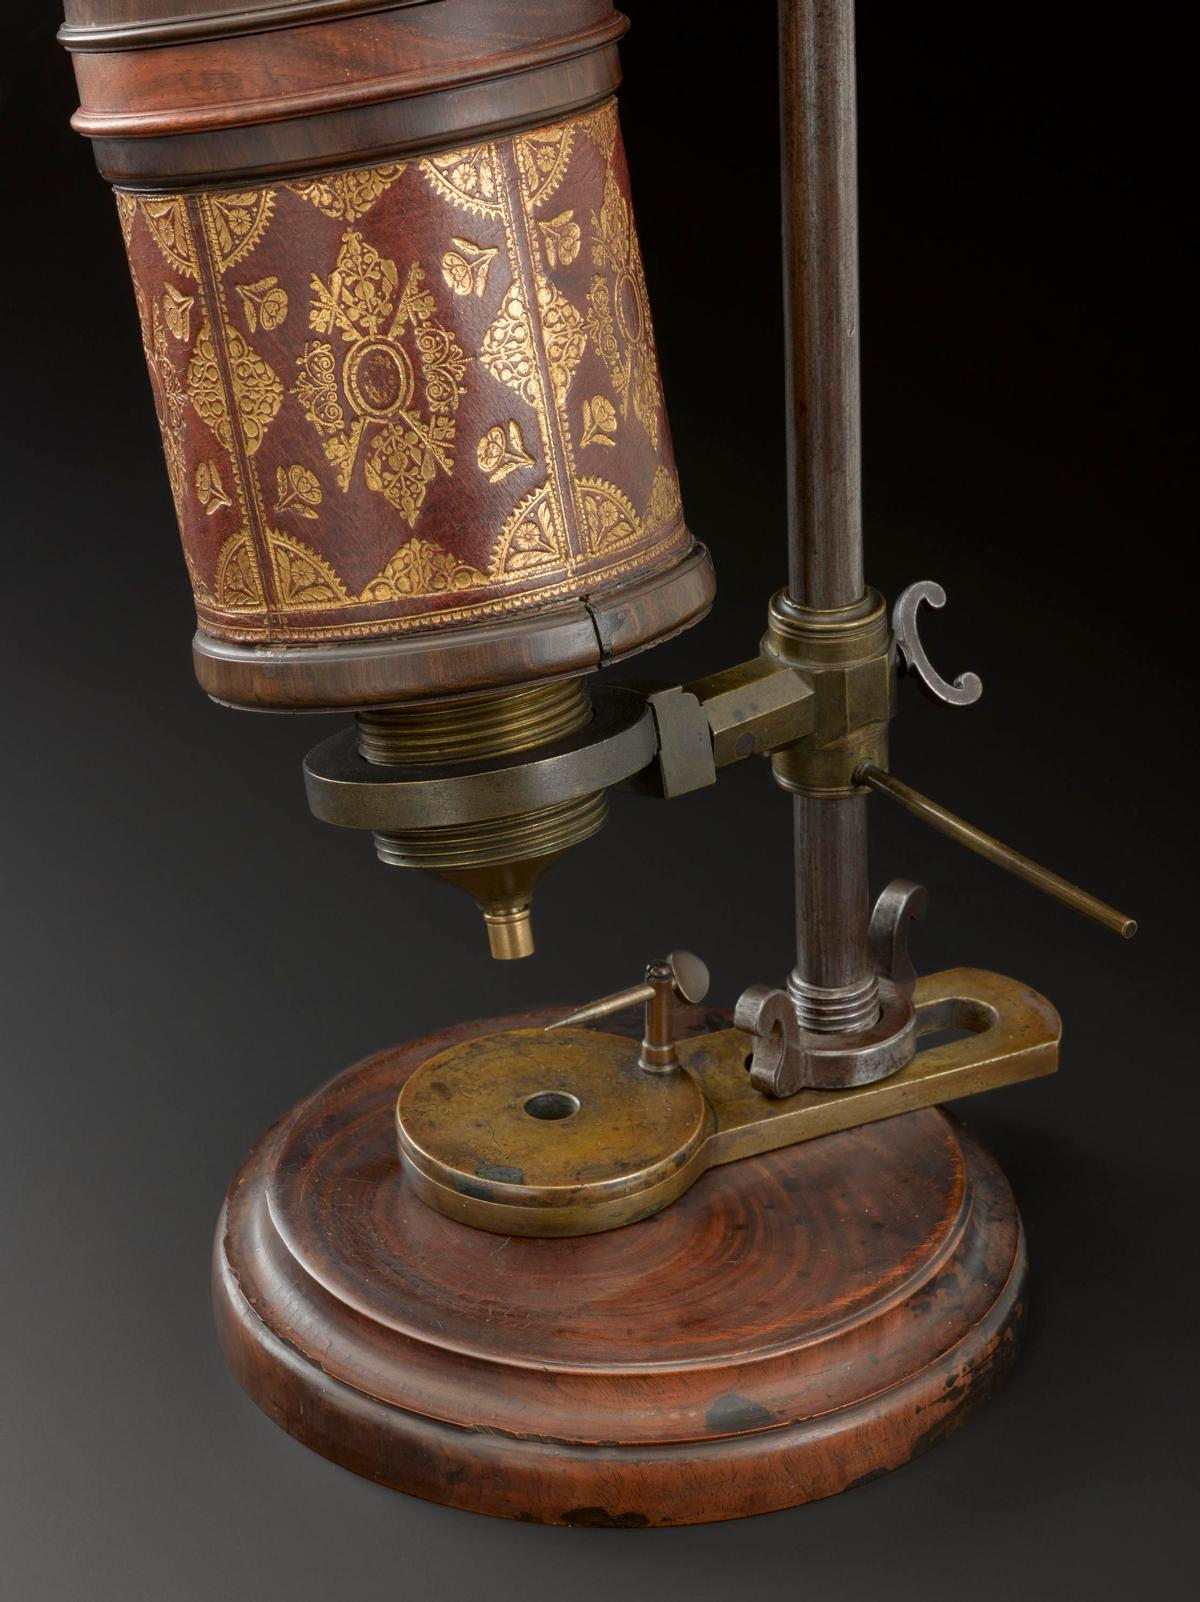 Hooke's microscope, which allowed him to present insects and plants in such fine detail / Science Museum Group